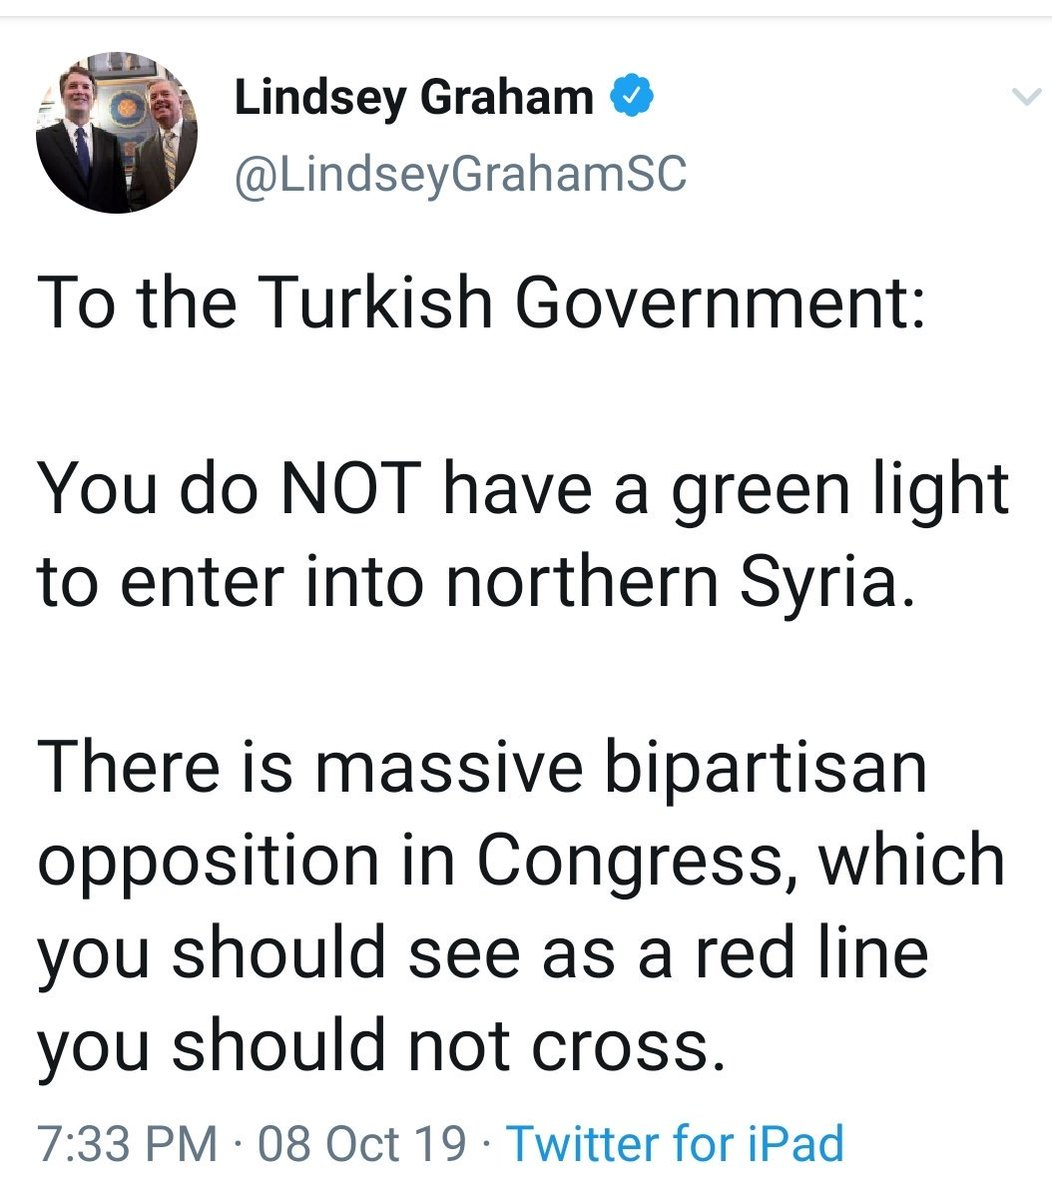 @harrisonjaime And, into Syria Turkey goes! I am sure they weighed Lindseys stern words heavily.🙄 Just a little meaningless GOP bluster! But, then the next moment Lindsey is back kissing Trumps feet! 😘🦶 Counting the days until we can vote you out Lindsey! Please support @harrisonjaime!